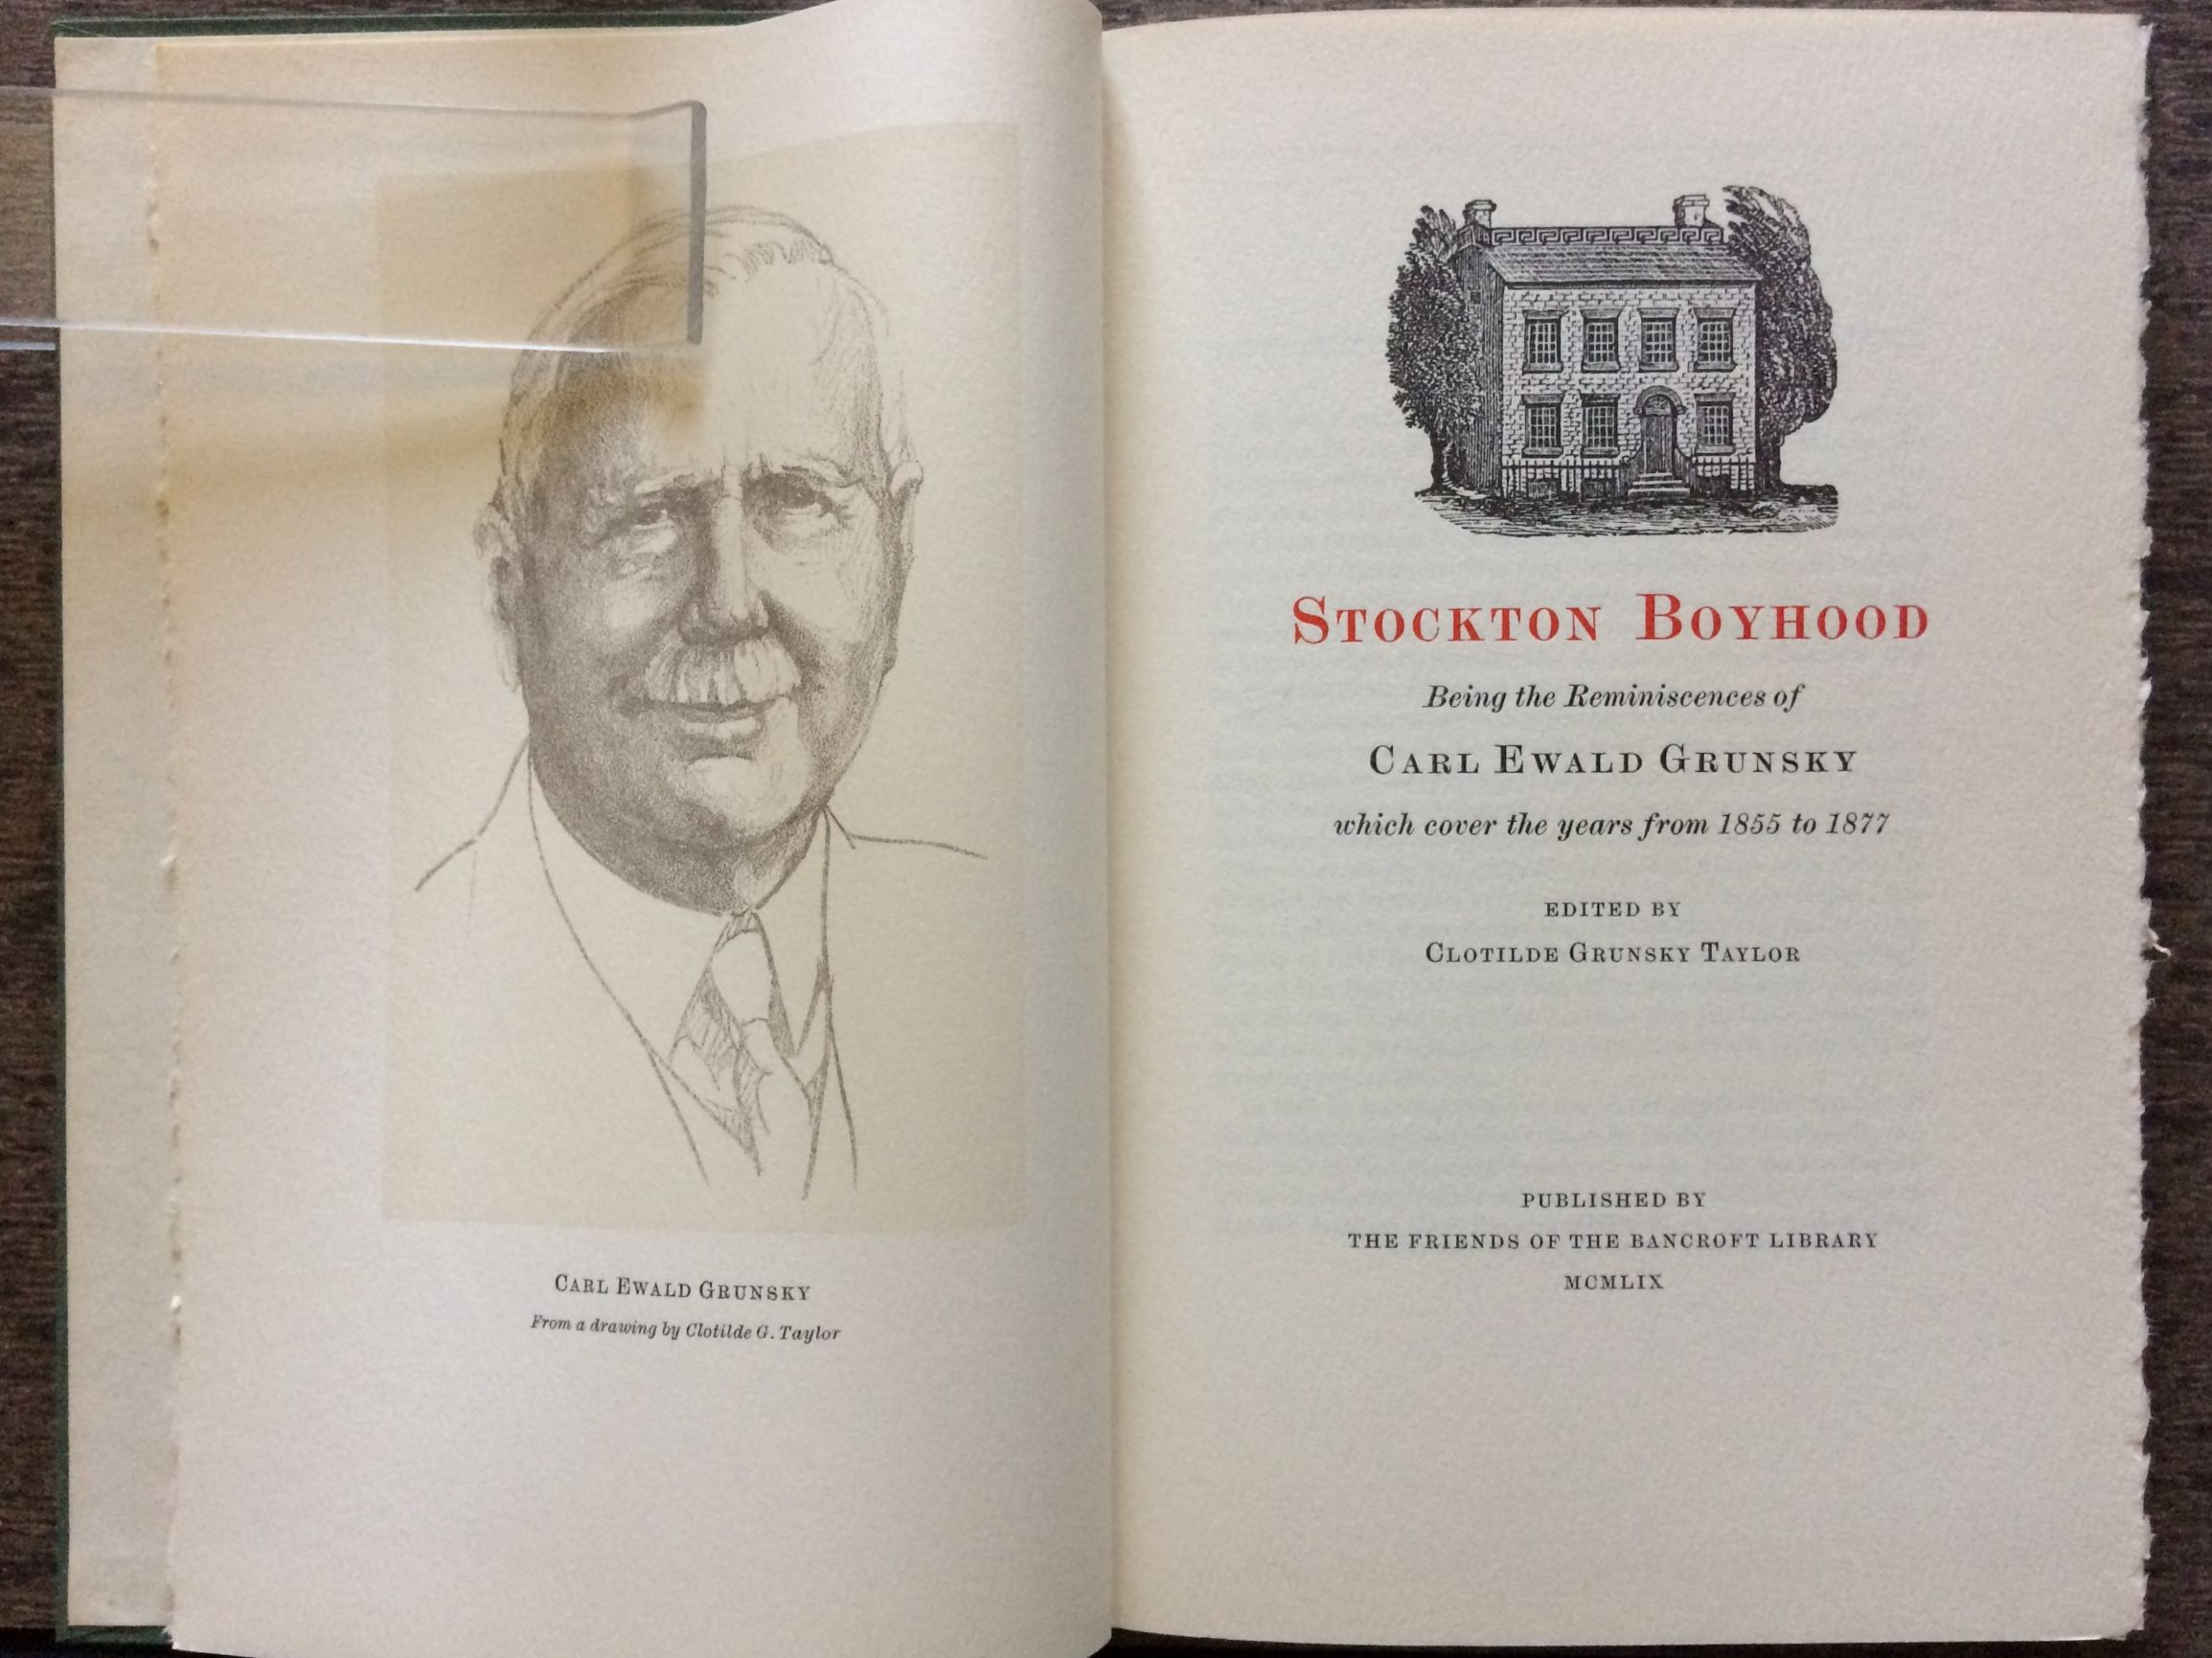 Image for Stockton Boyhood. Being the Reminiscences of Carl Ewald Gunsky, which cover the years from 1855-1877.  Edited by Clotilde Grunsky Taylor.